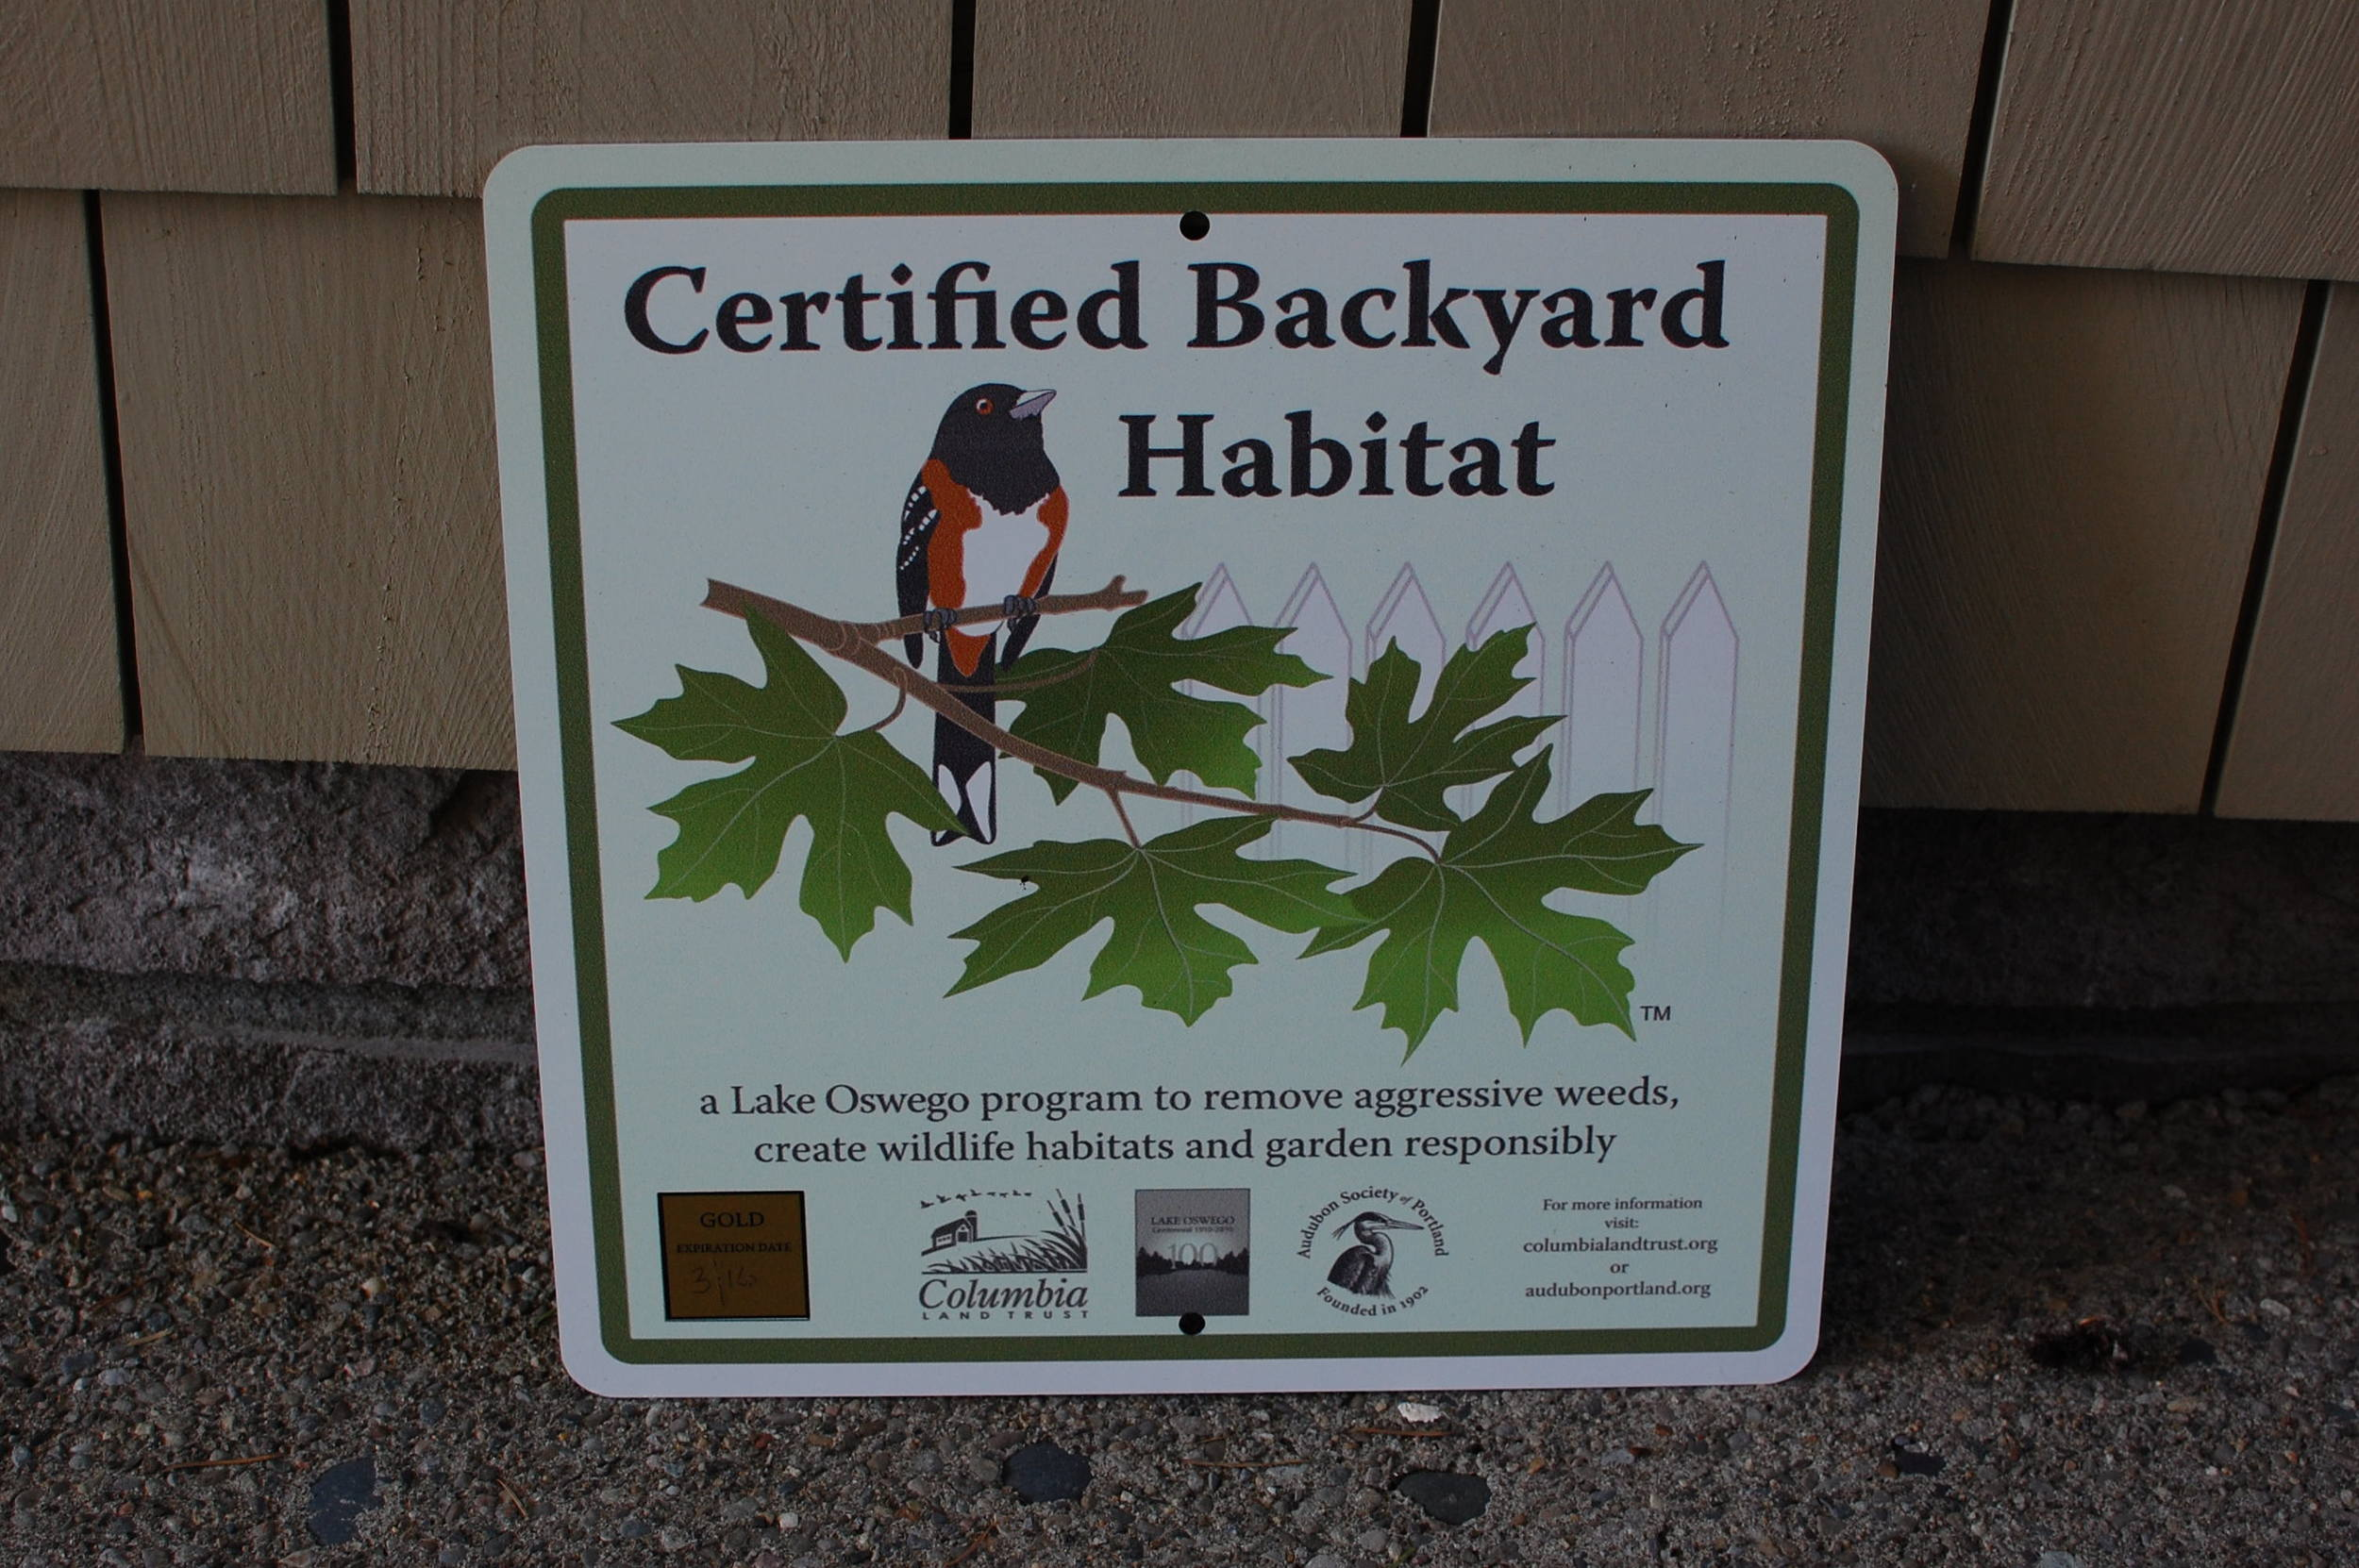 certified-backyard-habitat.JPG